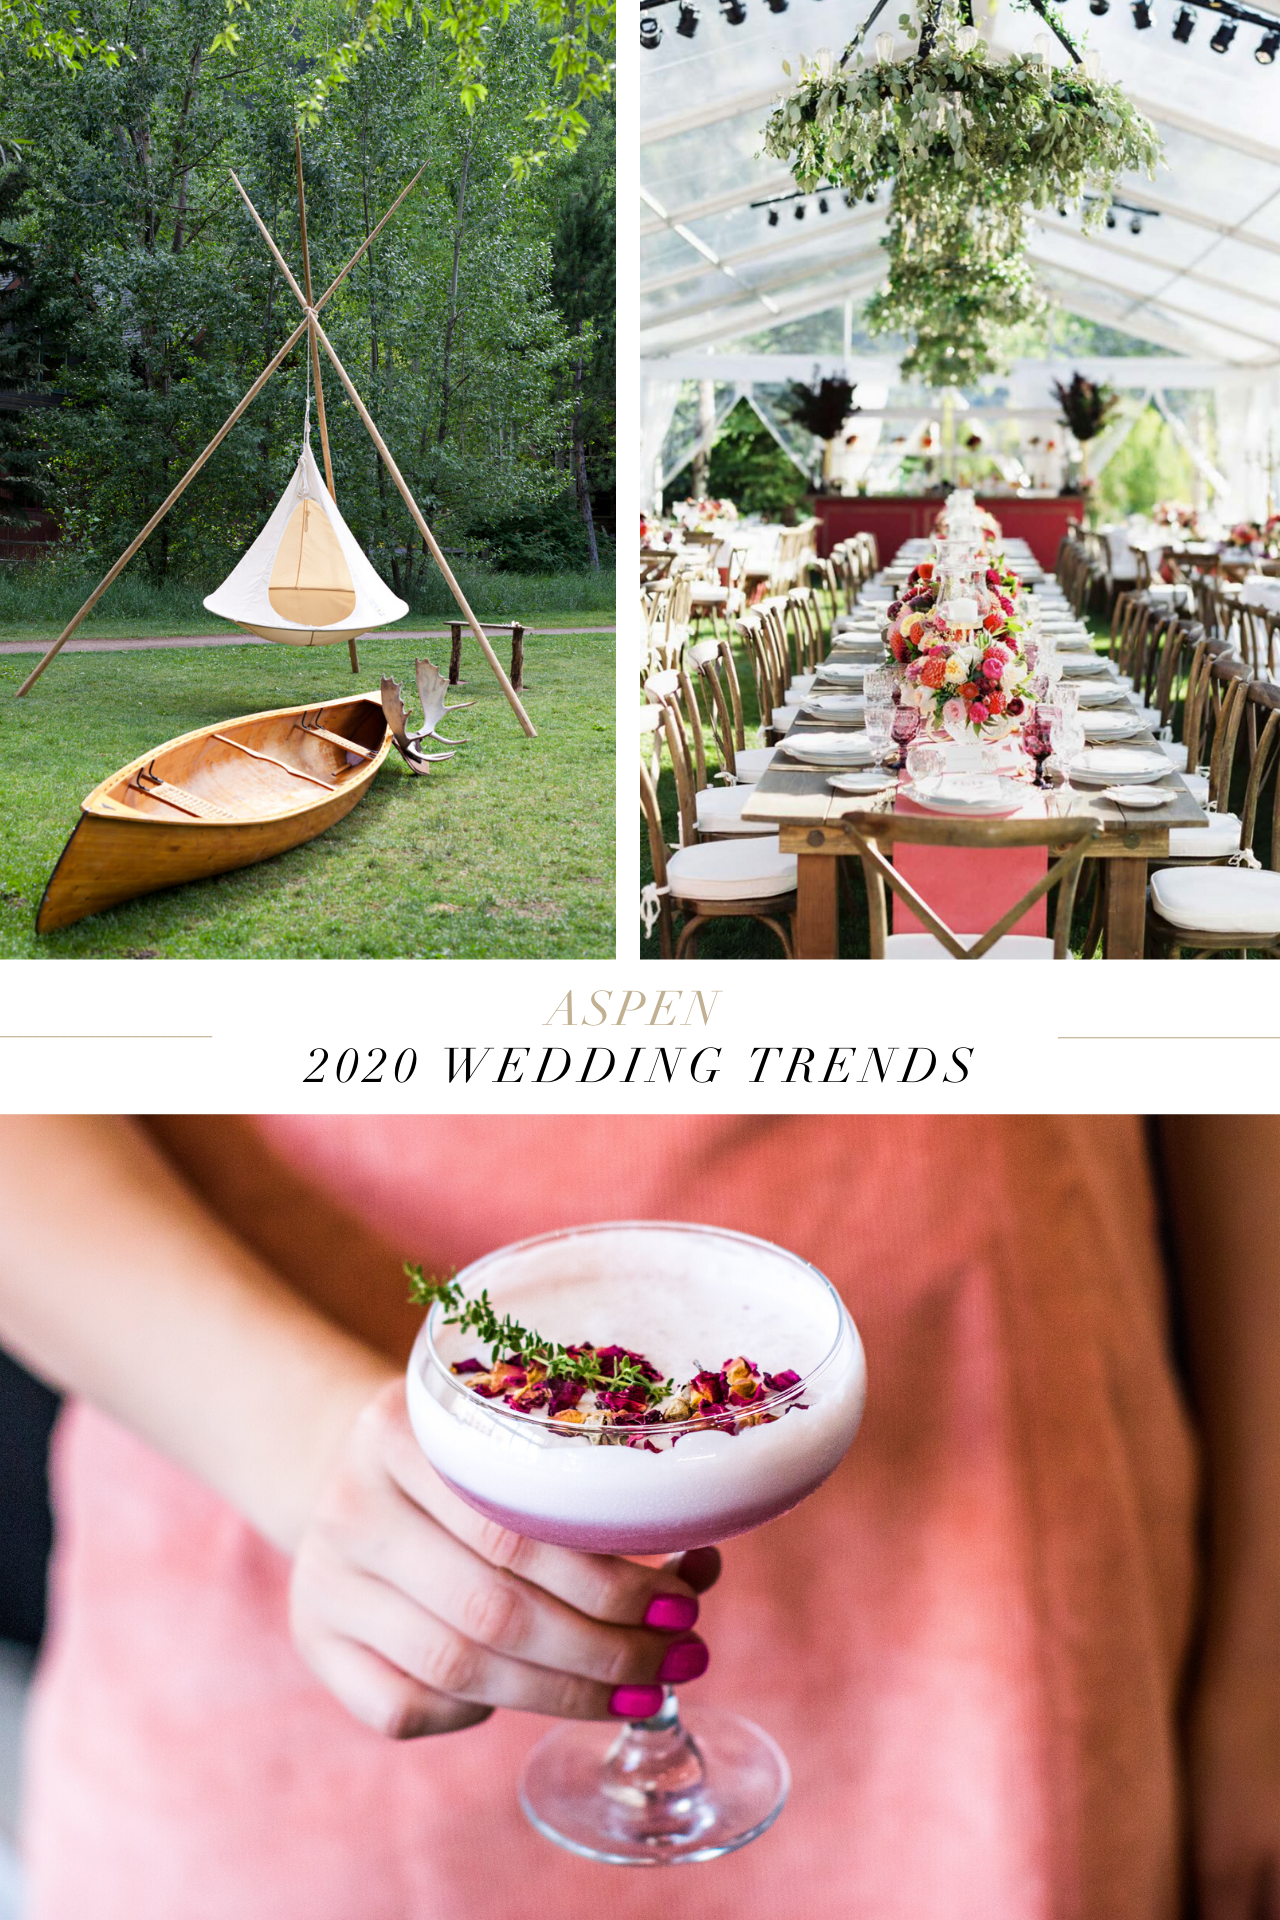 7 Wedding Predictions for 2020 from Aspen Professionals in